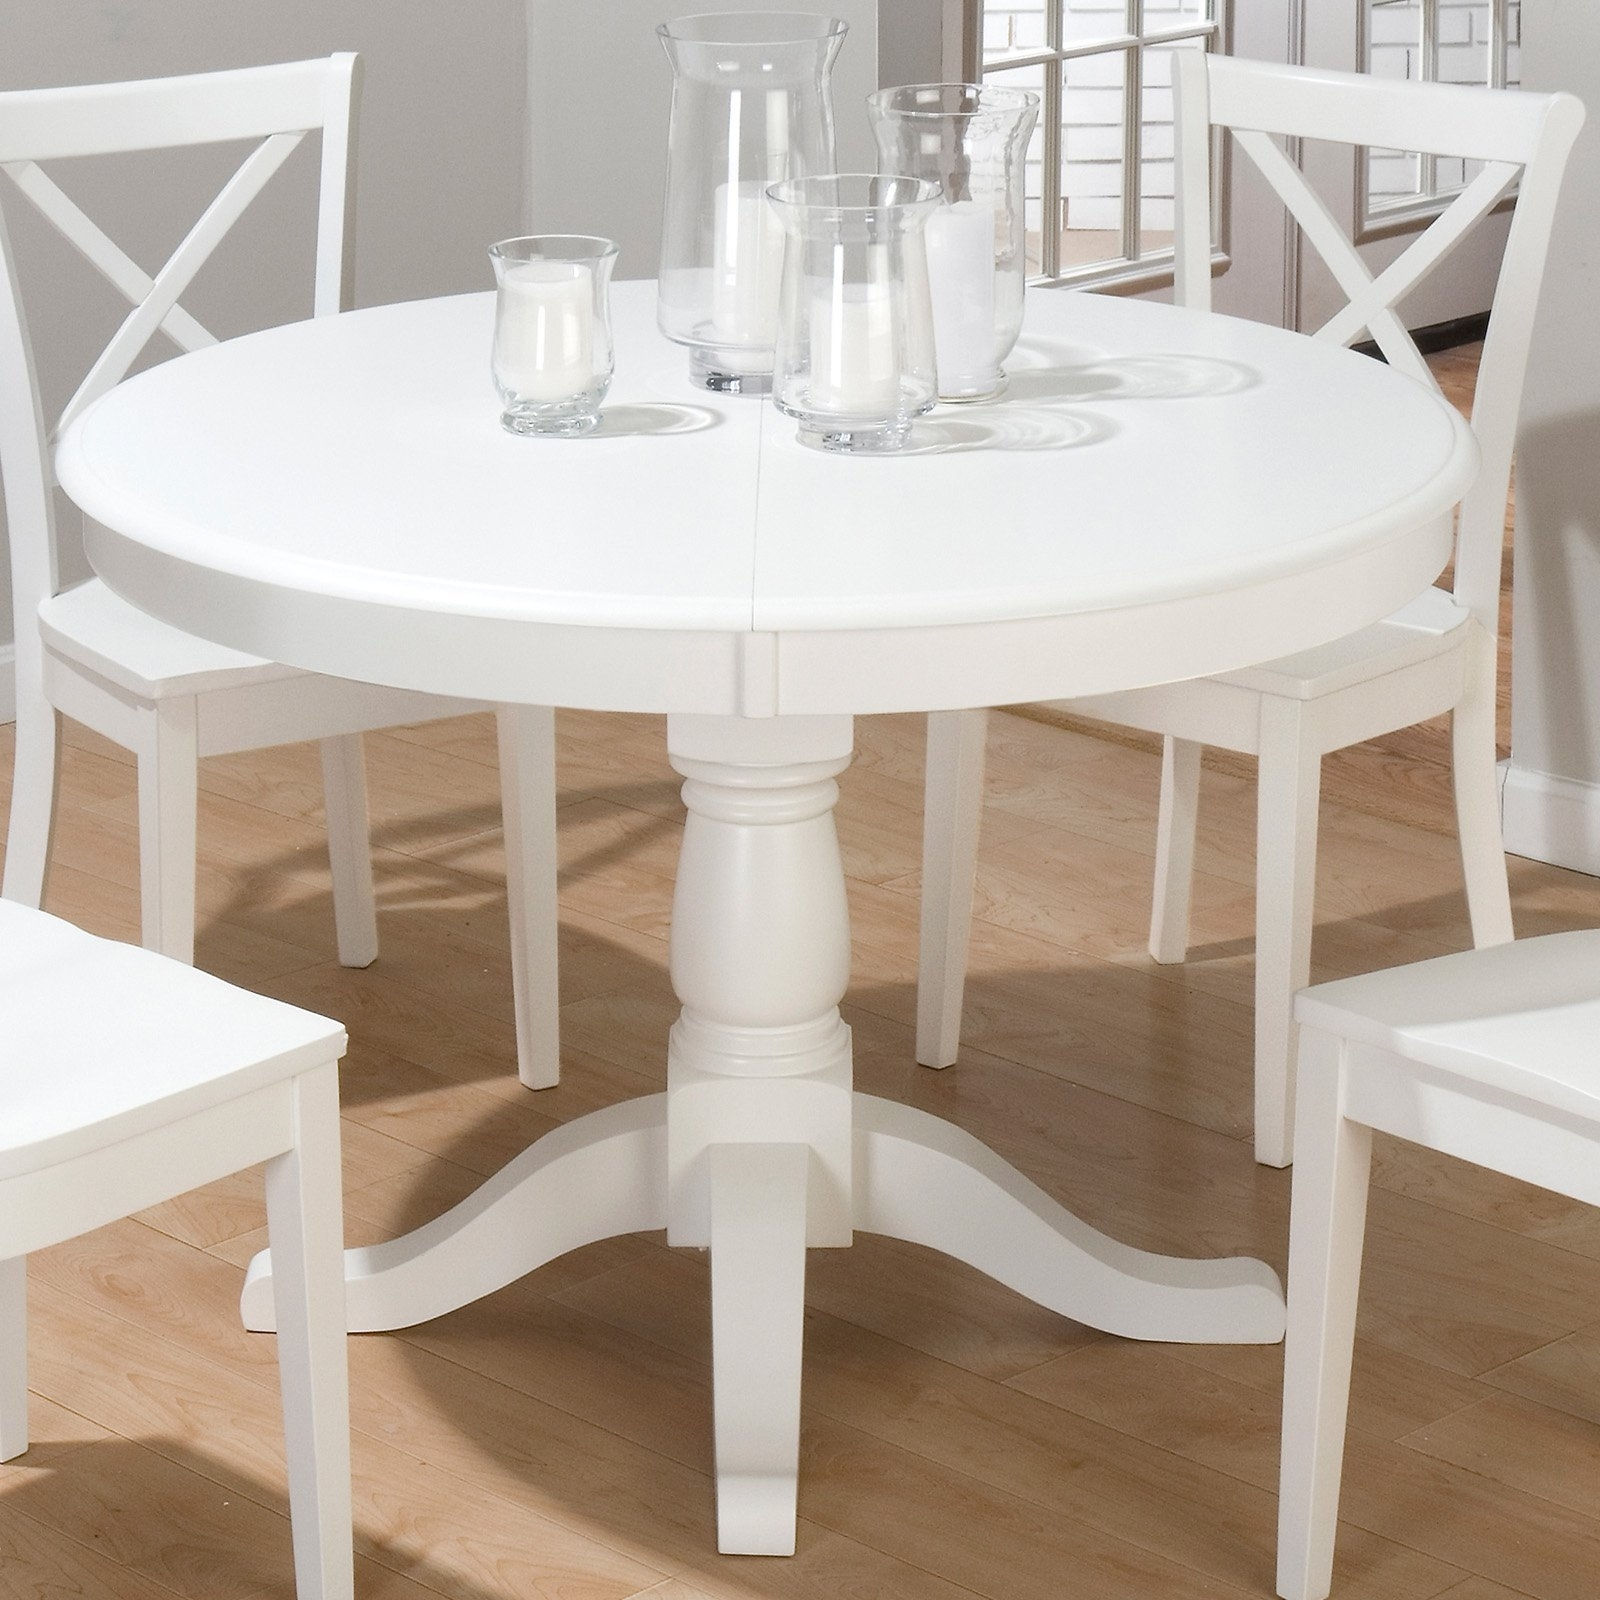 Large White Round Dining Tables For 2017 Round White Dining Tables Table Seats 6 And Chairs For Sale Sets (View 15 of 25)